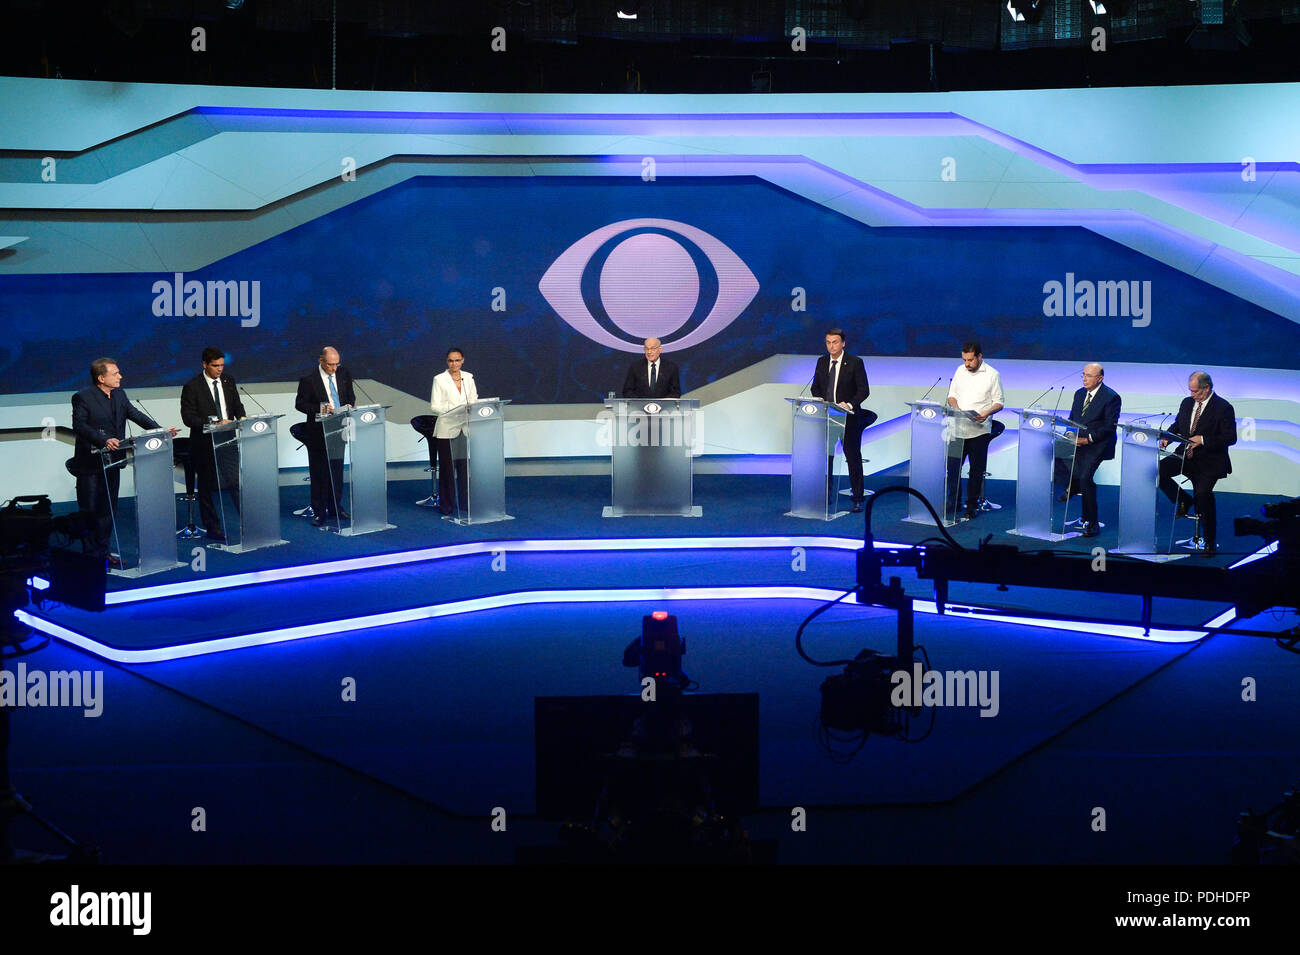 Sao Paulo, Brazil, on August 9, 2018. (L-R) Brazilian presidential candidates Alvaro Dias (Podemos), Cabo Daciolo (Patriota), Geraldo Alkmin (PSDB), Marina Silva (Rede), moderator journalist Ricardo Boechat, Jair Bolsonaro (PSL), Guilherme Boulos (PSOL), Henrique Meirelles (MDB) and Ciro Gomes (PDT) take part in the first presidential debate ahead of the October 7 general election, at Bandeirantes television network in Sao Paulo, Brazil, on August 9, 2018.  (PHOTO: LEVI BIANCO/BRAZIL PHOTO PRESS) - Stock Image